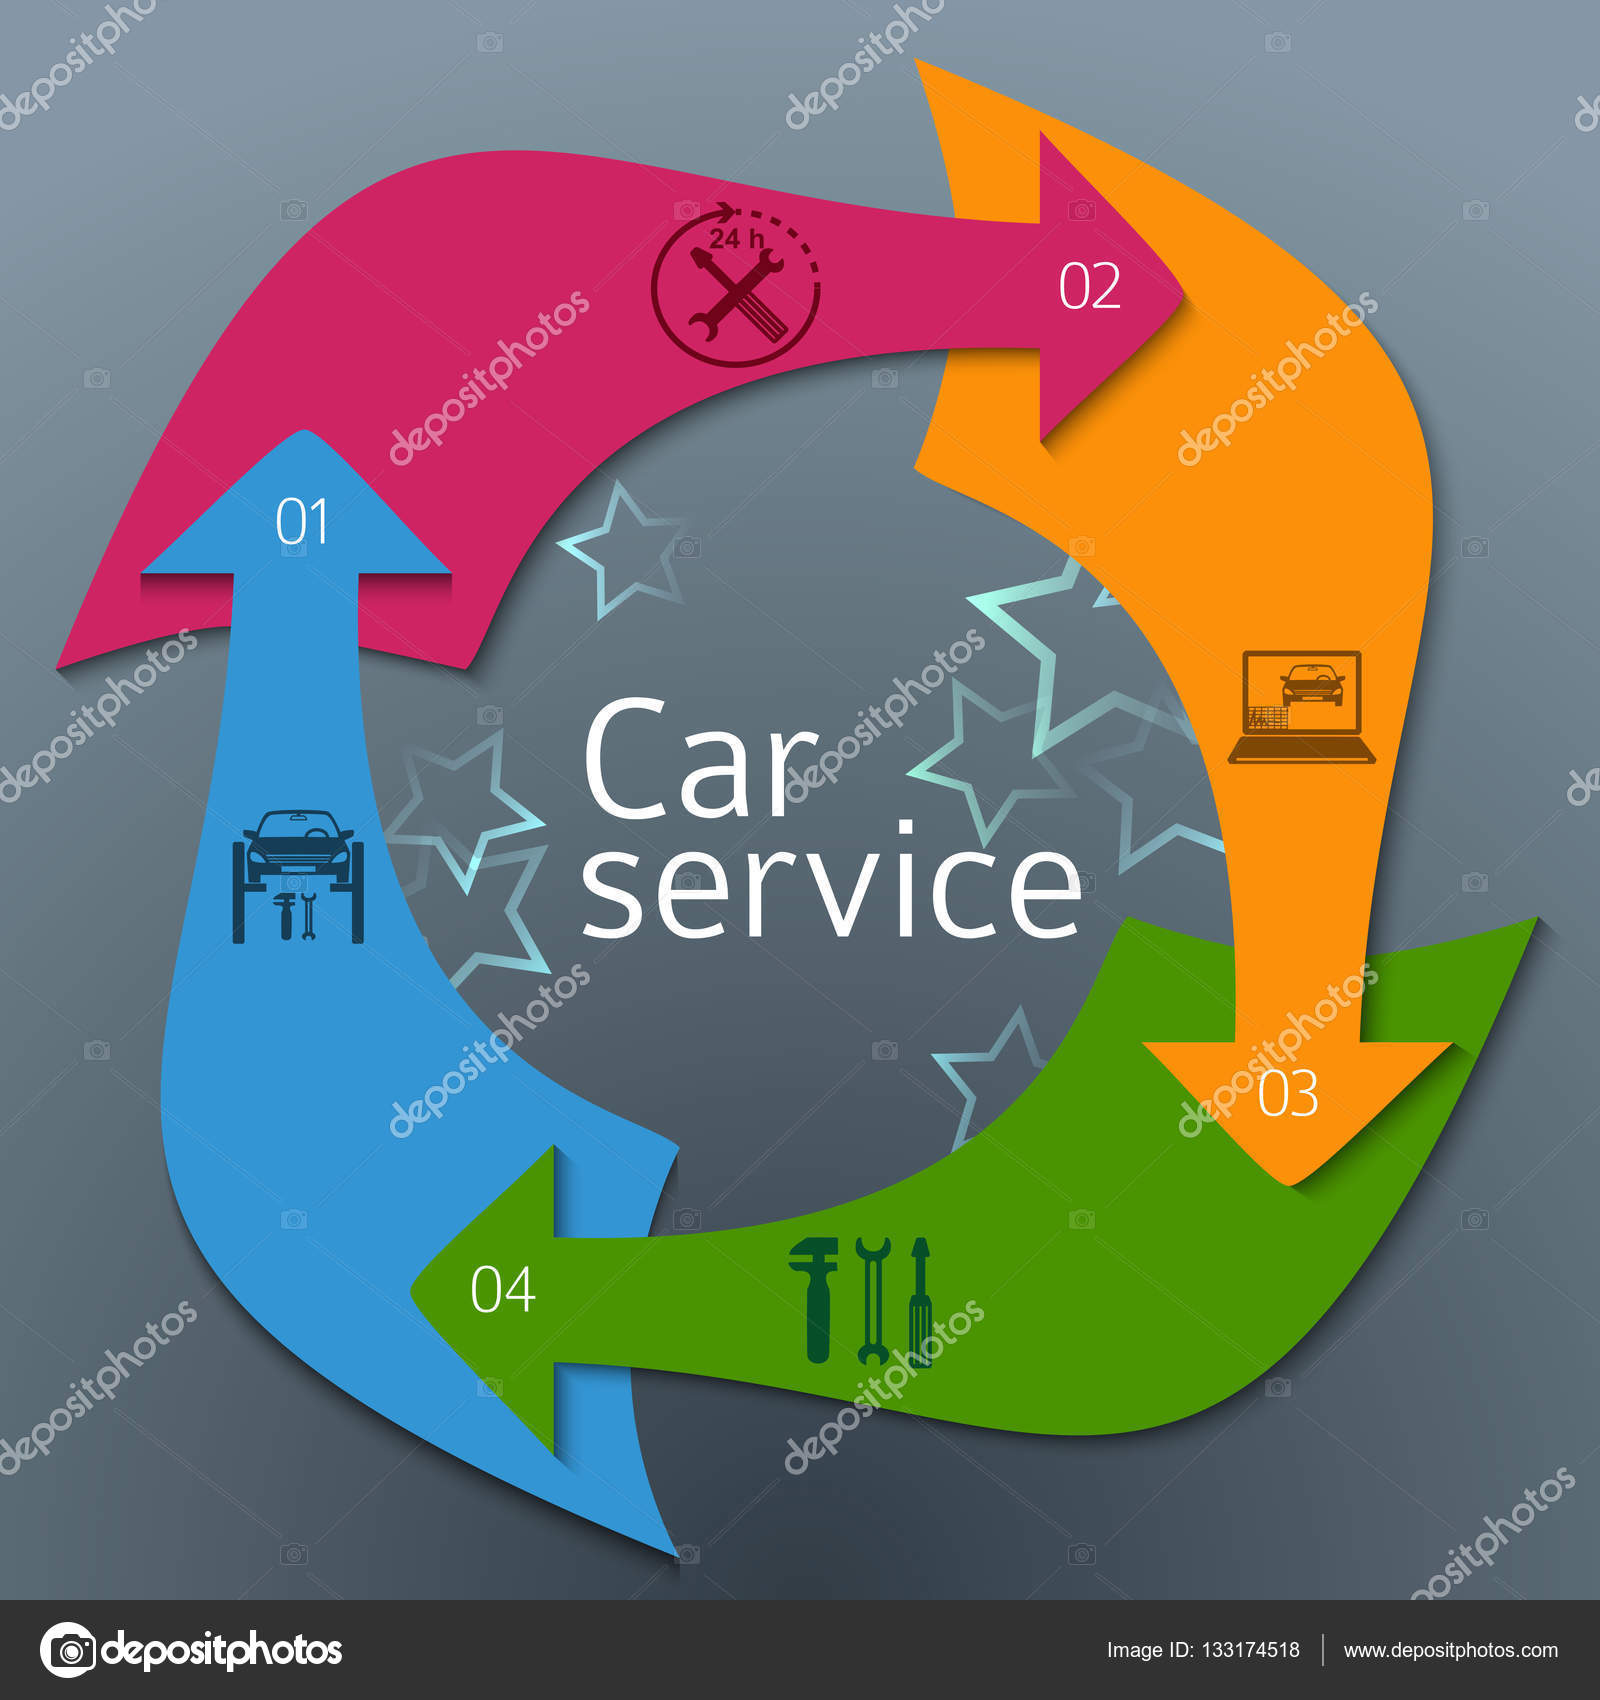 car services cover page booklet arrows concept06 stock vector auto service and car repair background icons designelements on vertical rectangular banner modern business presentation templatefor car newsletter